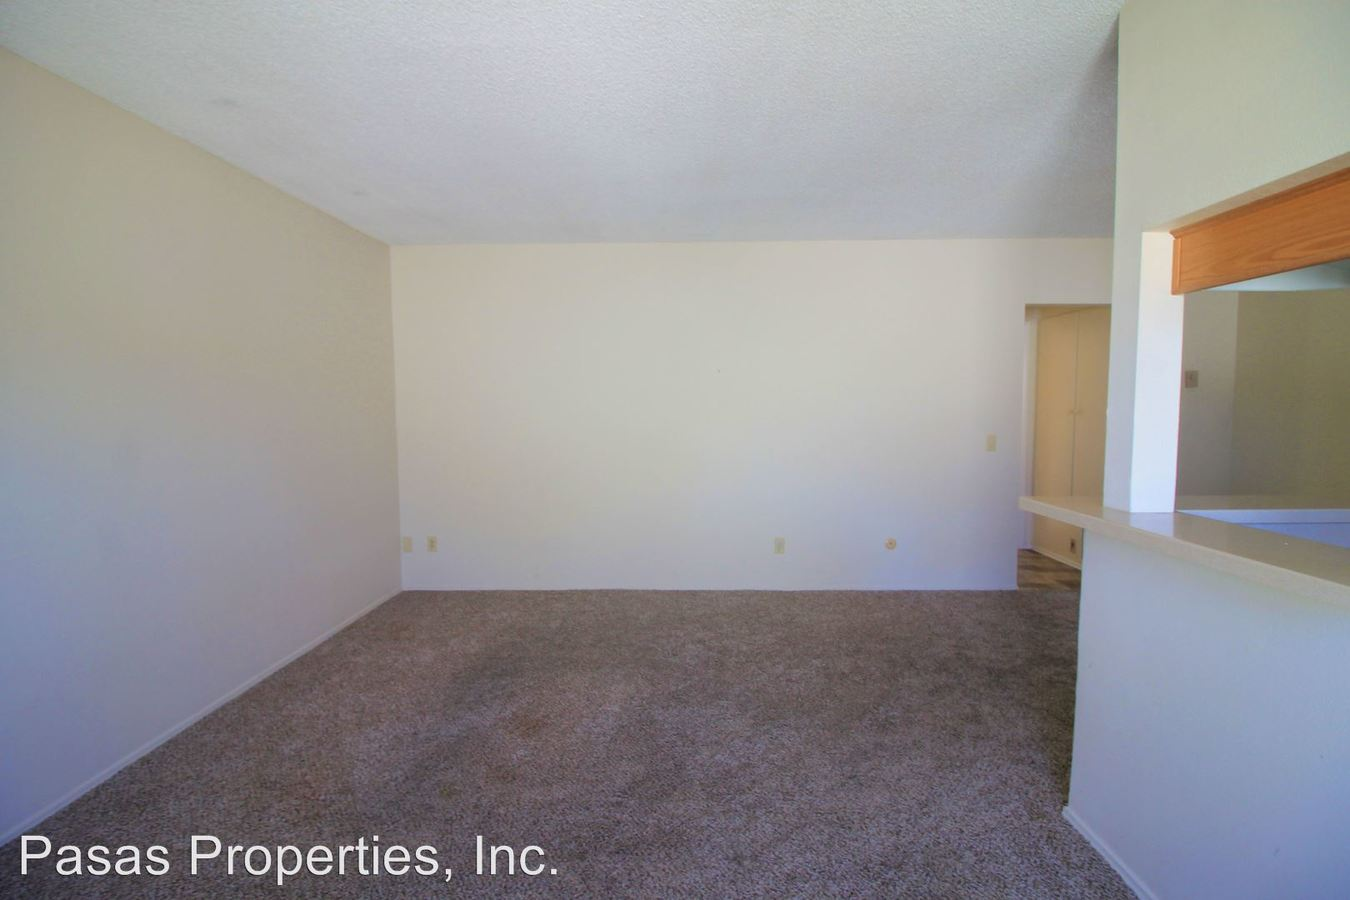 1 Bedroom 1 Bathroom Apartment for rent at 4345 Rialto St. in San Diego, CA